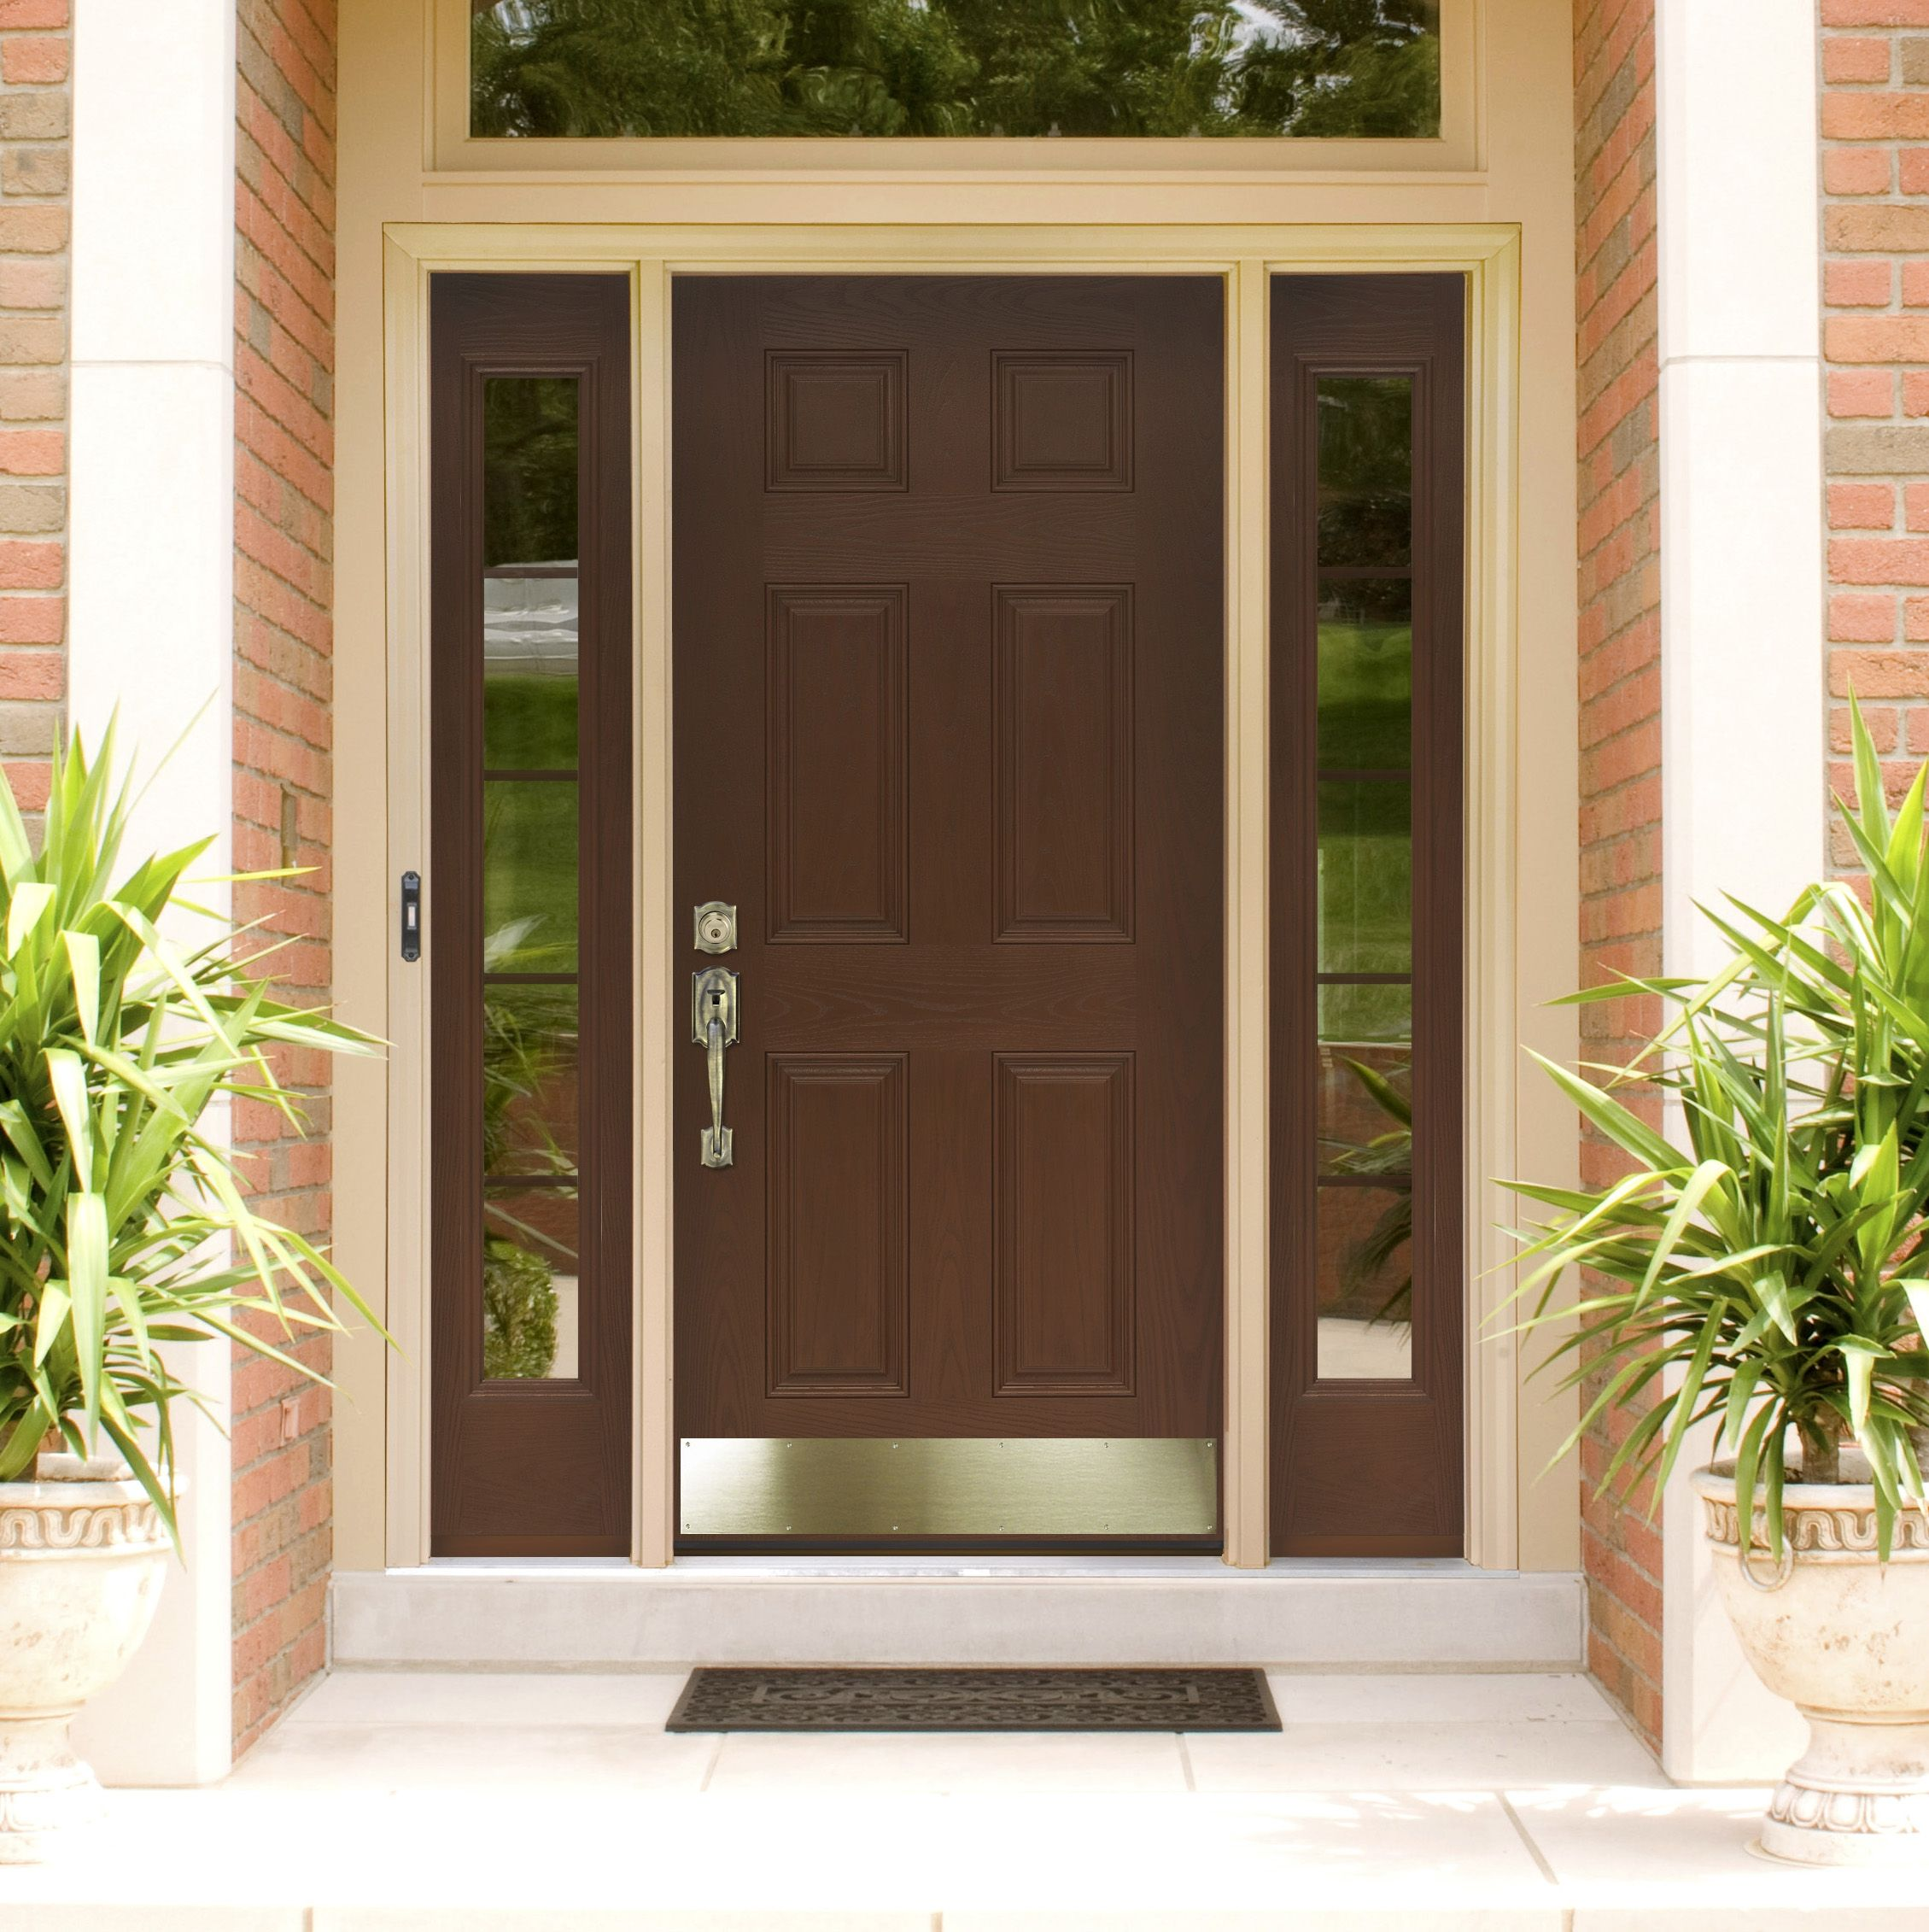 Exquisite brown mahogany 6 panels craftsman single modern for Exterior entry doors with glass